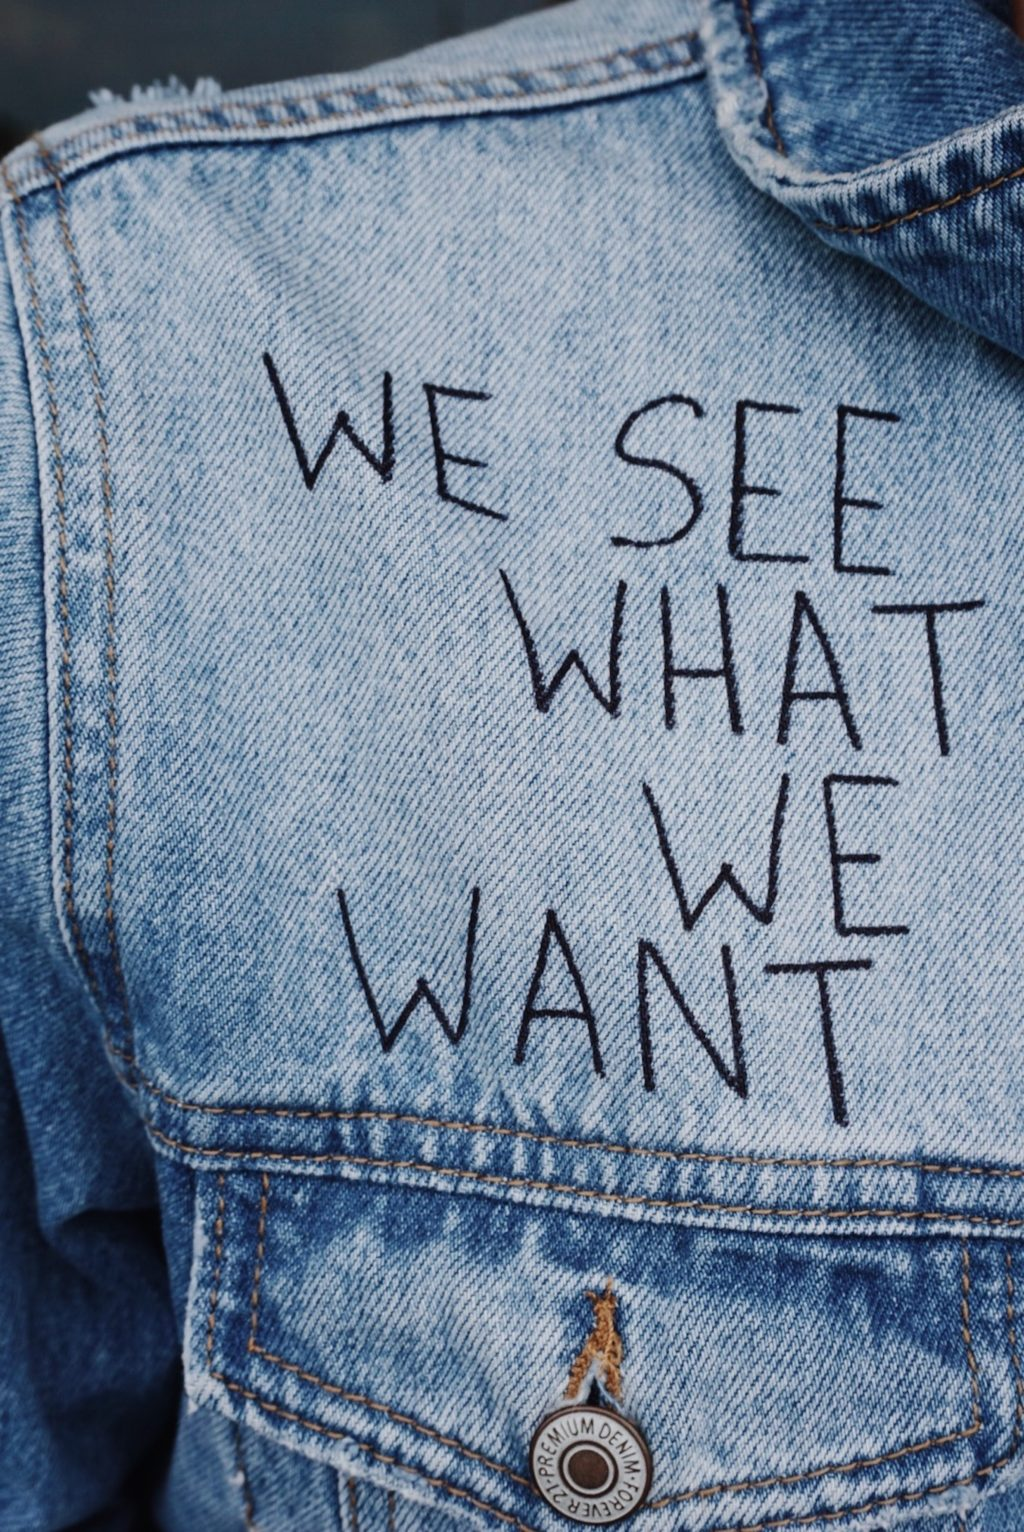 blue denim collared top with we see what we want text